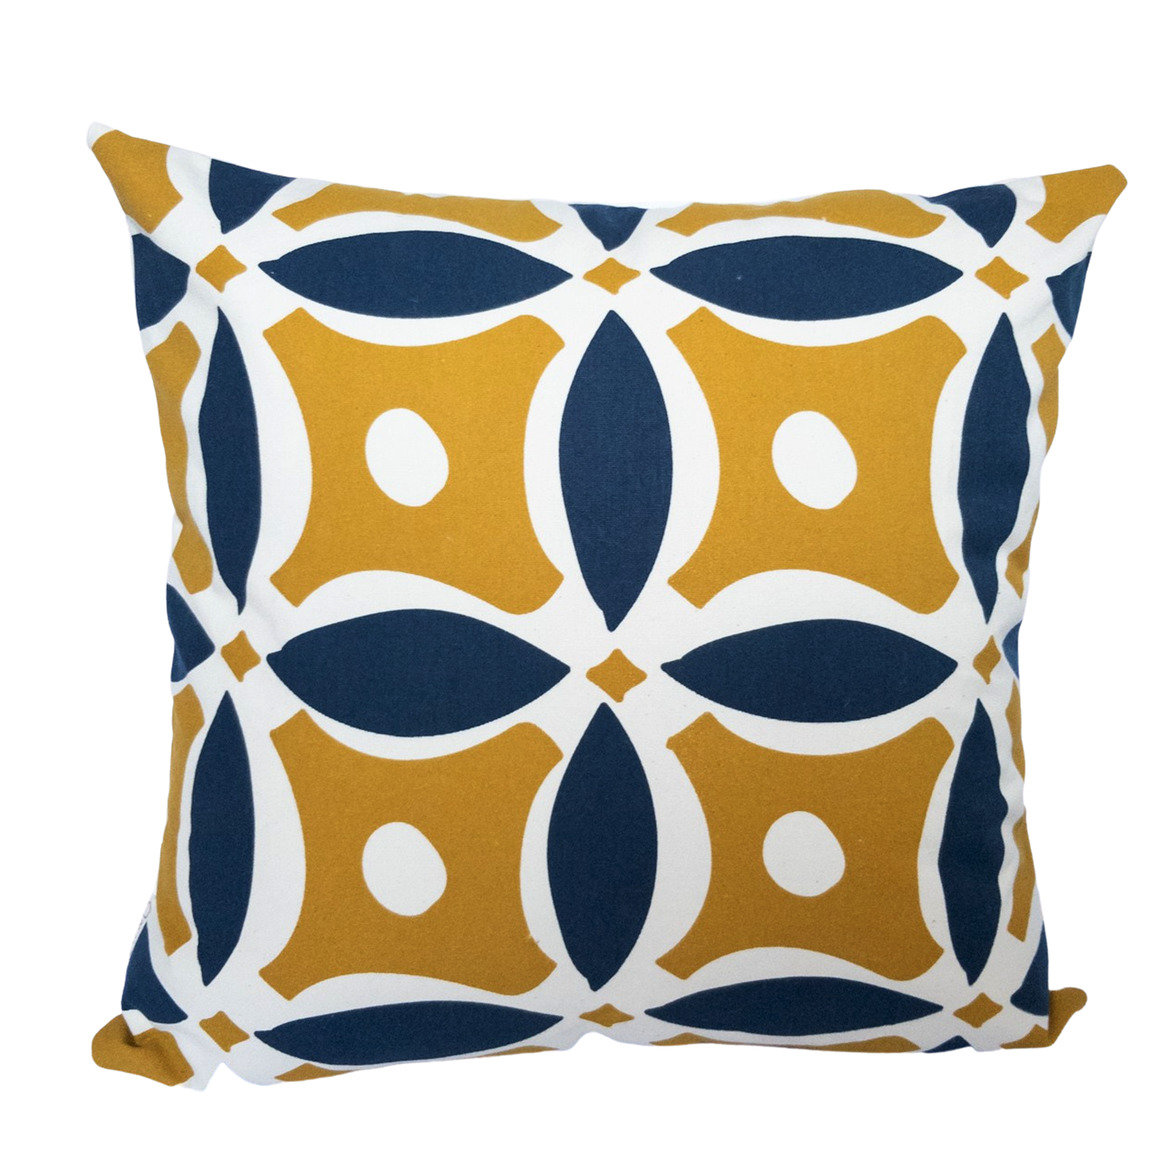 Vintage Inspired Geometric Hand Screen Printed 100% cotton cushion cover-3 Colourways | Trada Marketplace